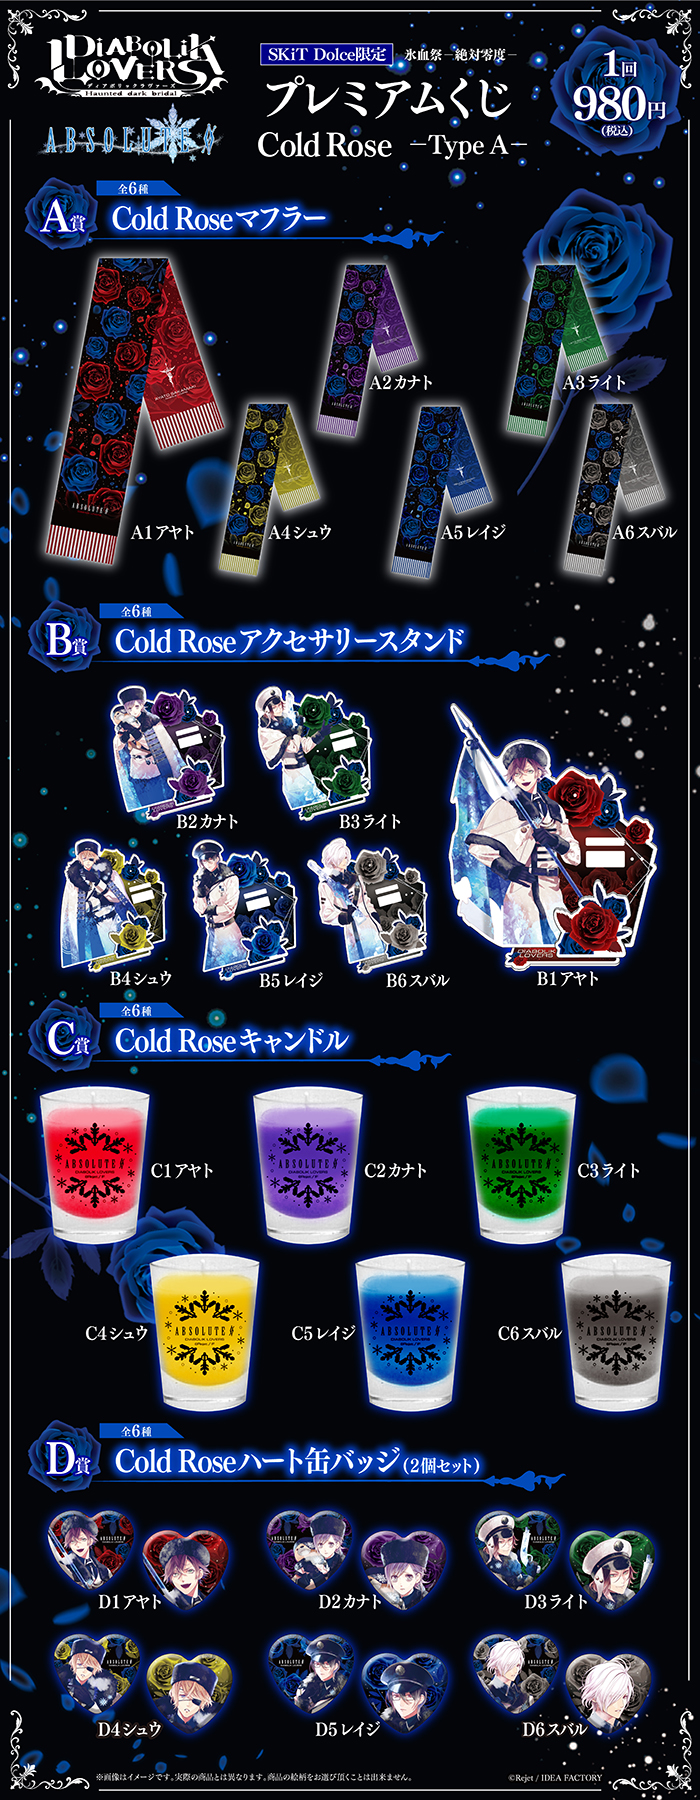 DIABOLIK LOVERS 氷血祭-絶対零度- SKiT Dolce限定 プレミアムくじ Cold Rose Type A